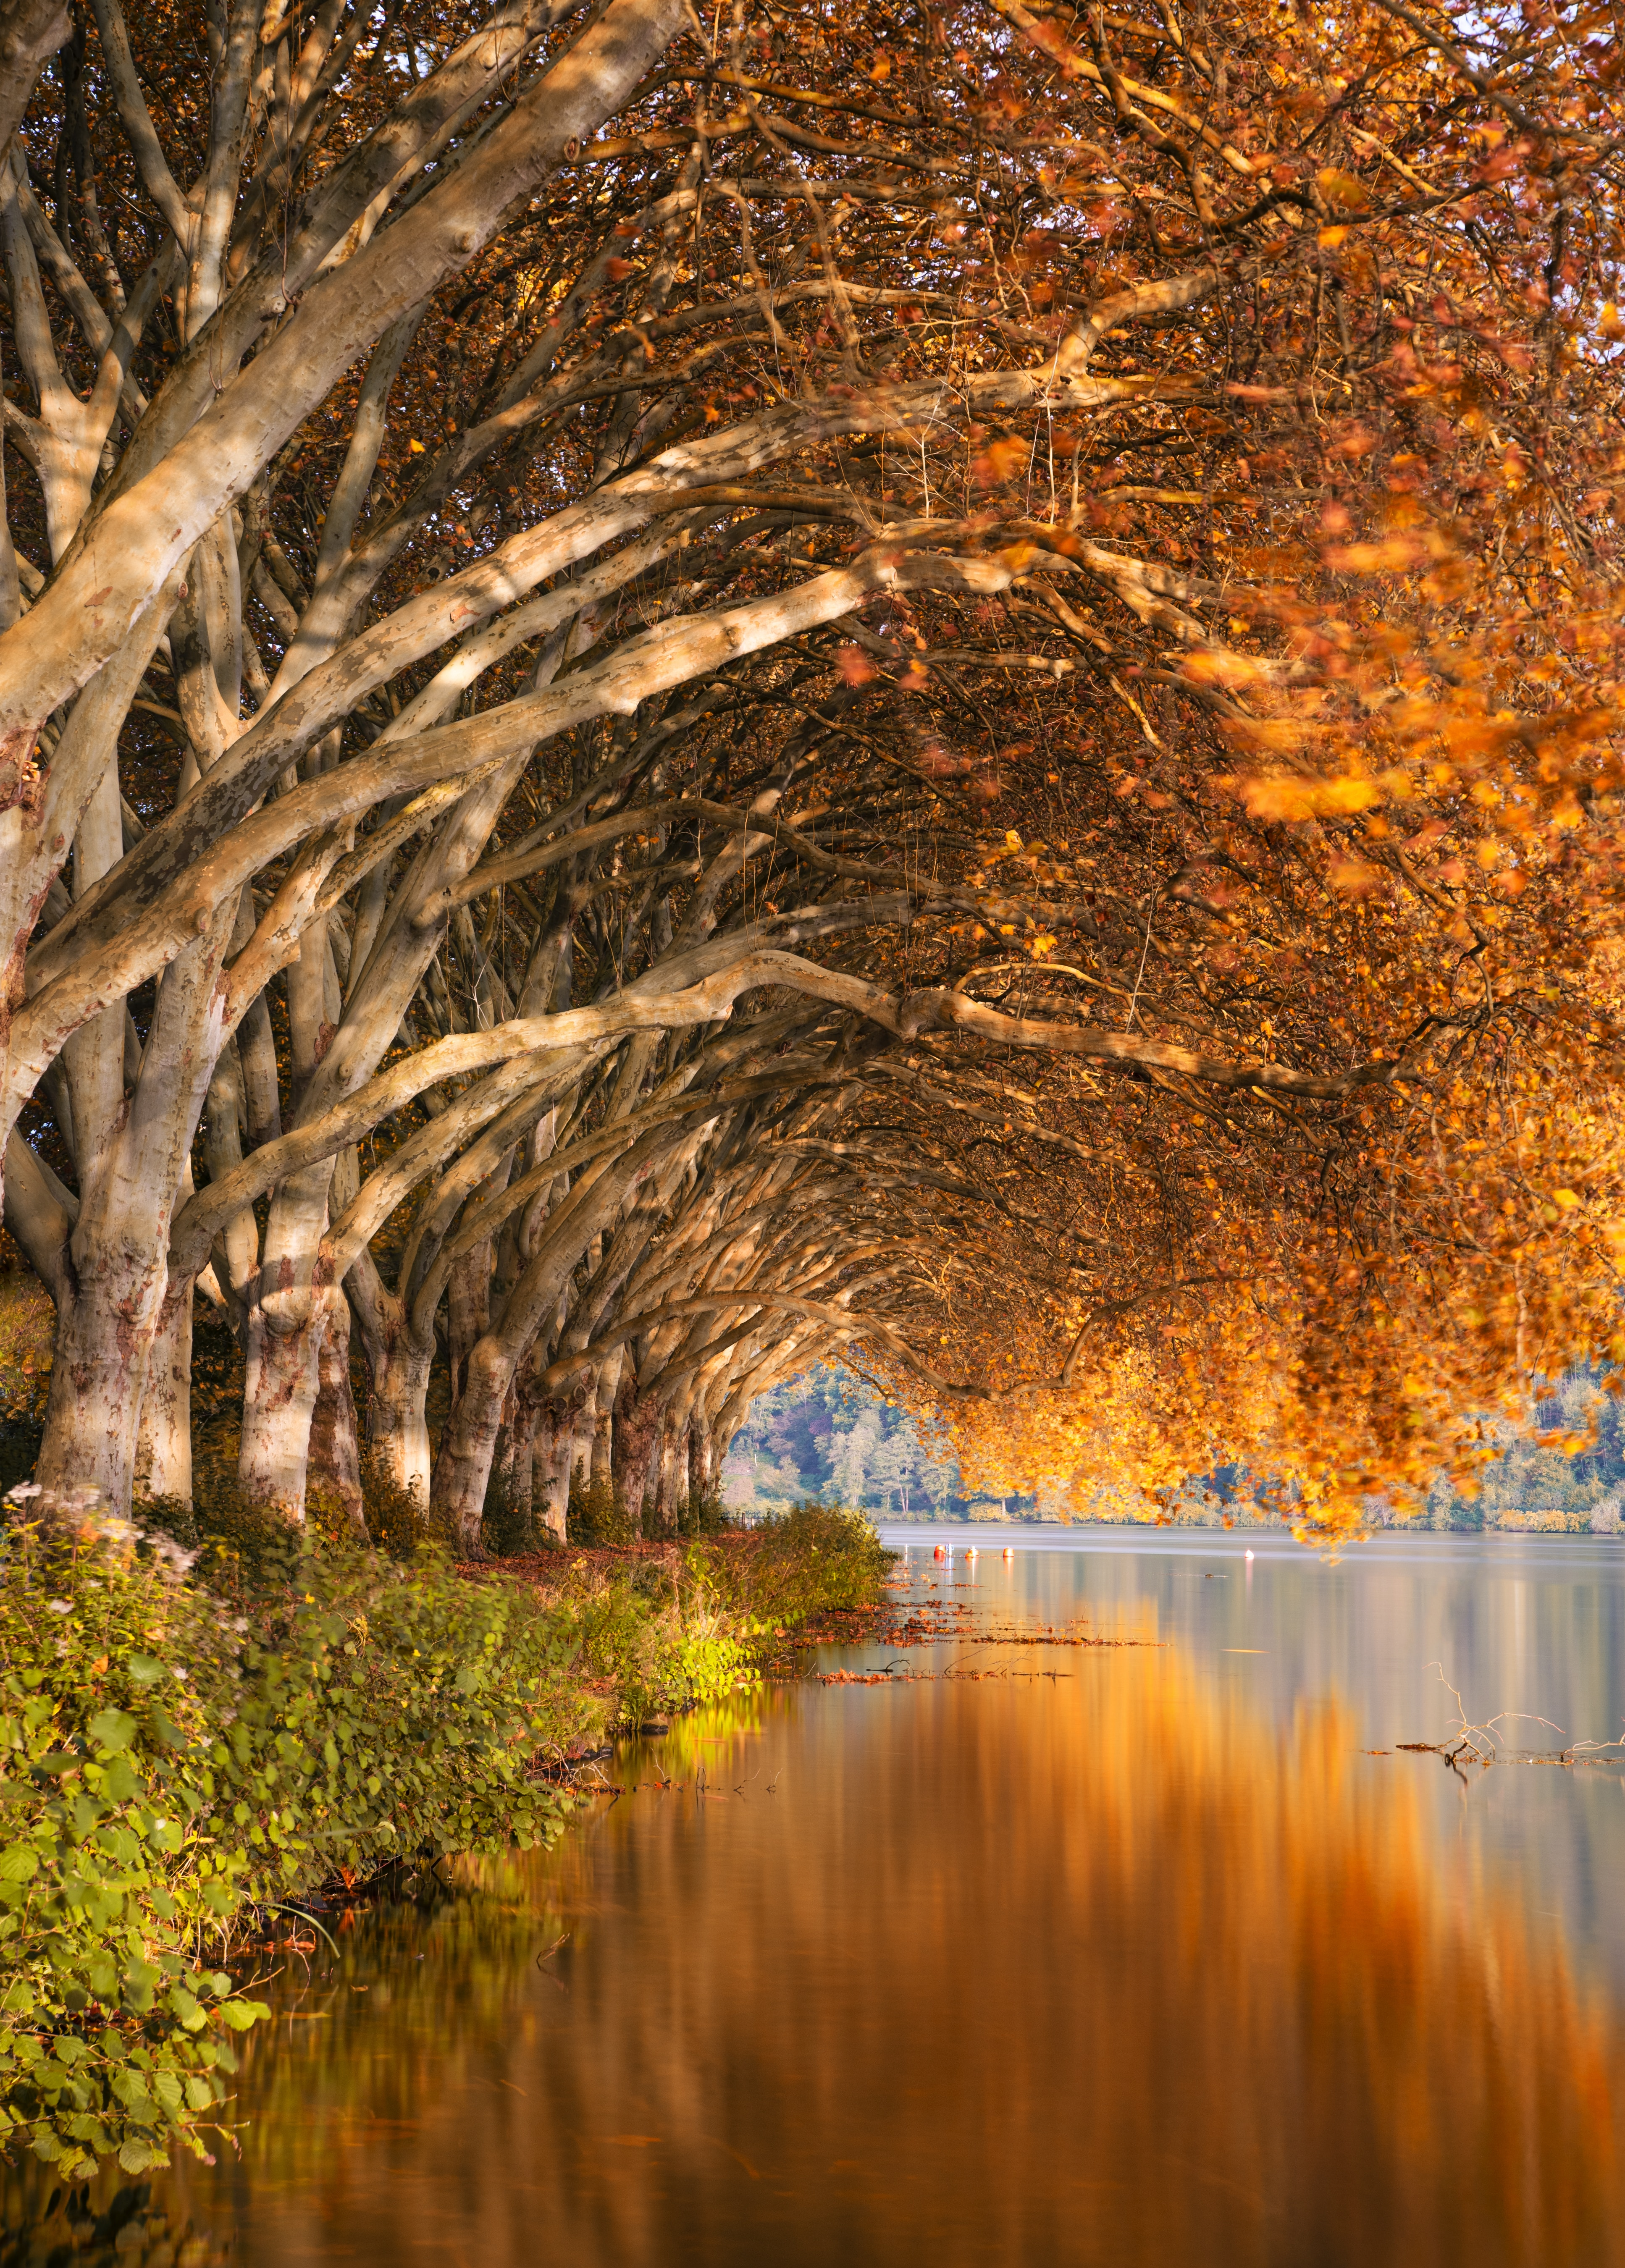 98833 download wallpaper Autumn, Landscape, Nature, Trees, Lake, Shore, Bank screensavers and pictures for free